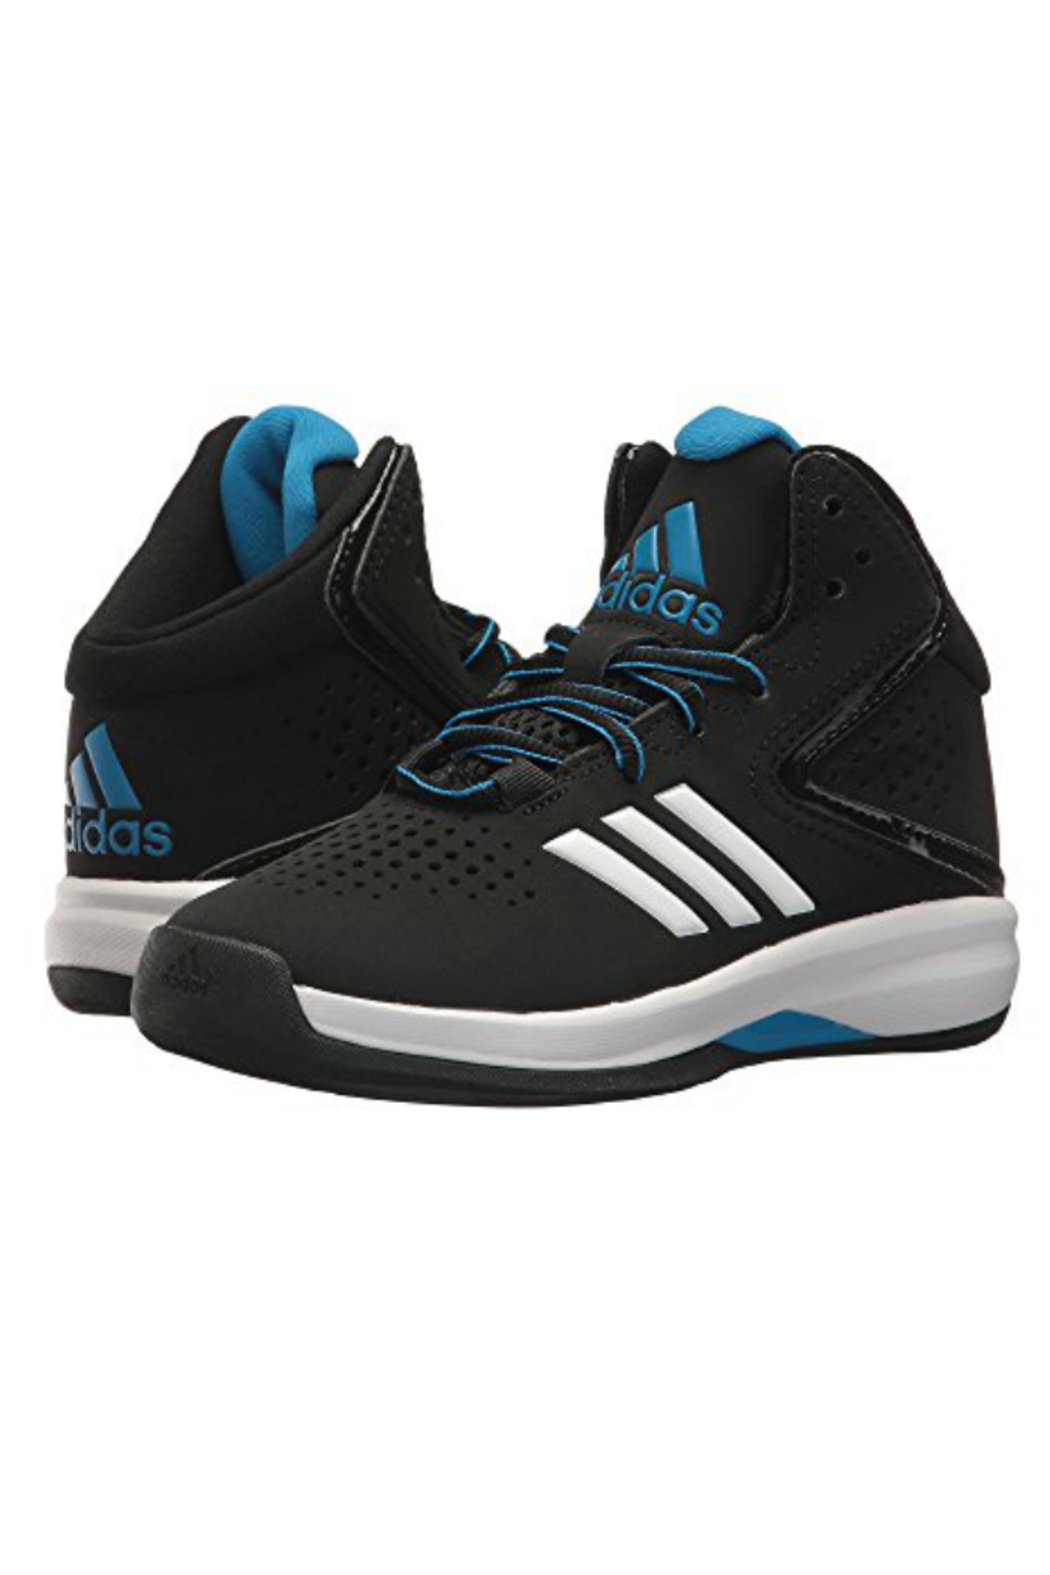 adidas ADIDAS CROSS EM UP - Front Full Image